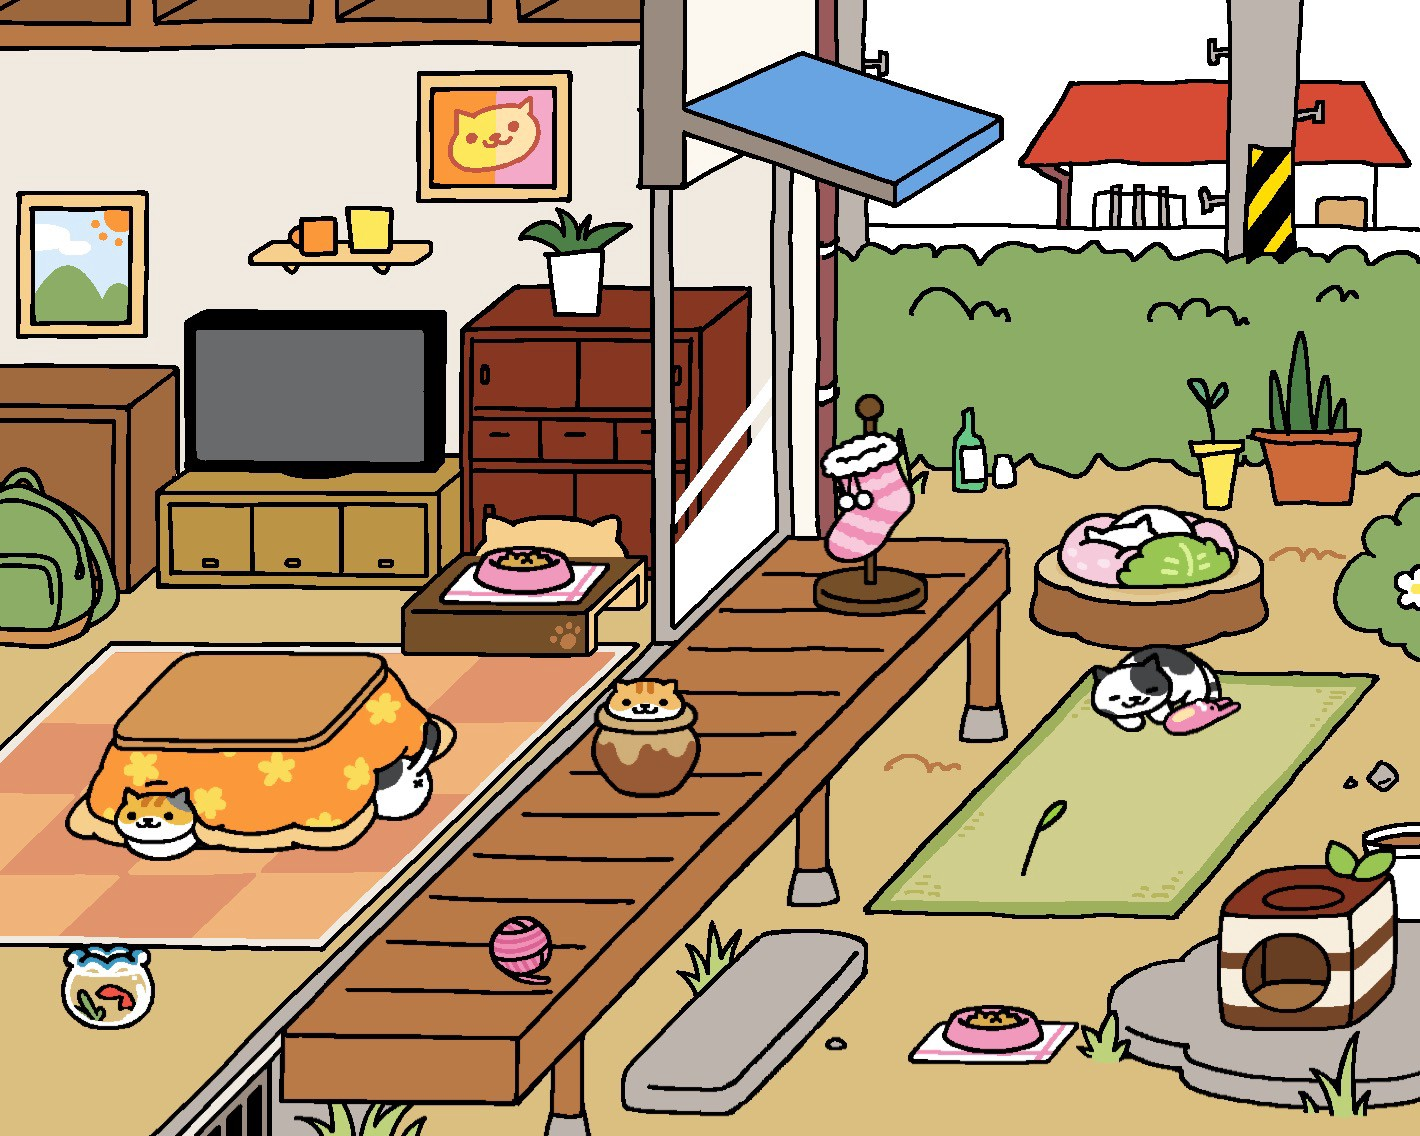 Neko Atsume Review. The best game to be addicted to | by Alice Wang | Medium